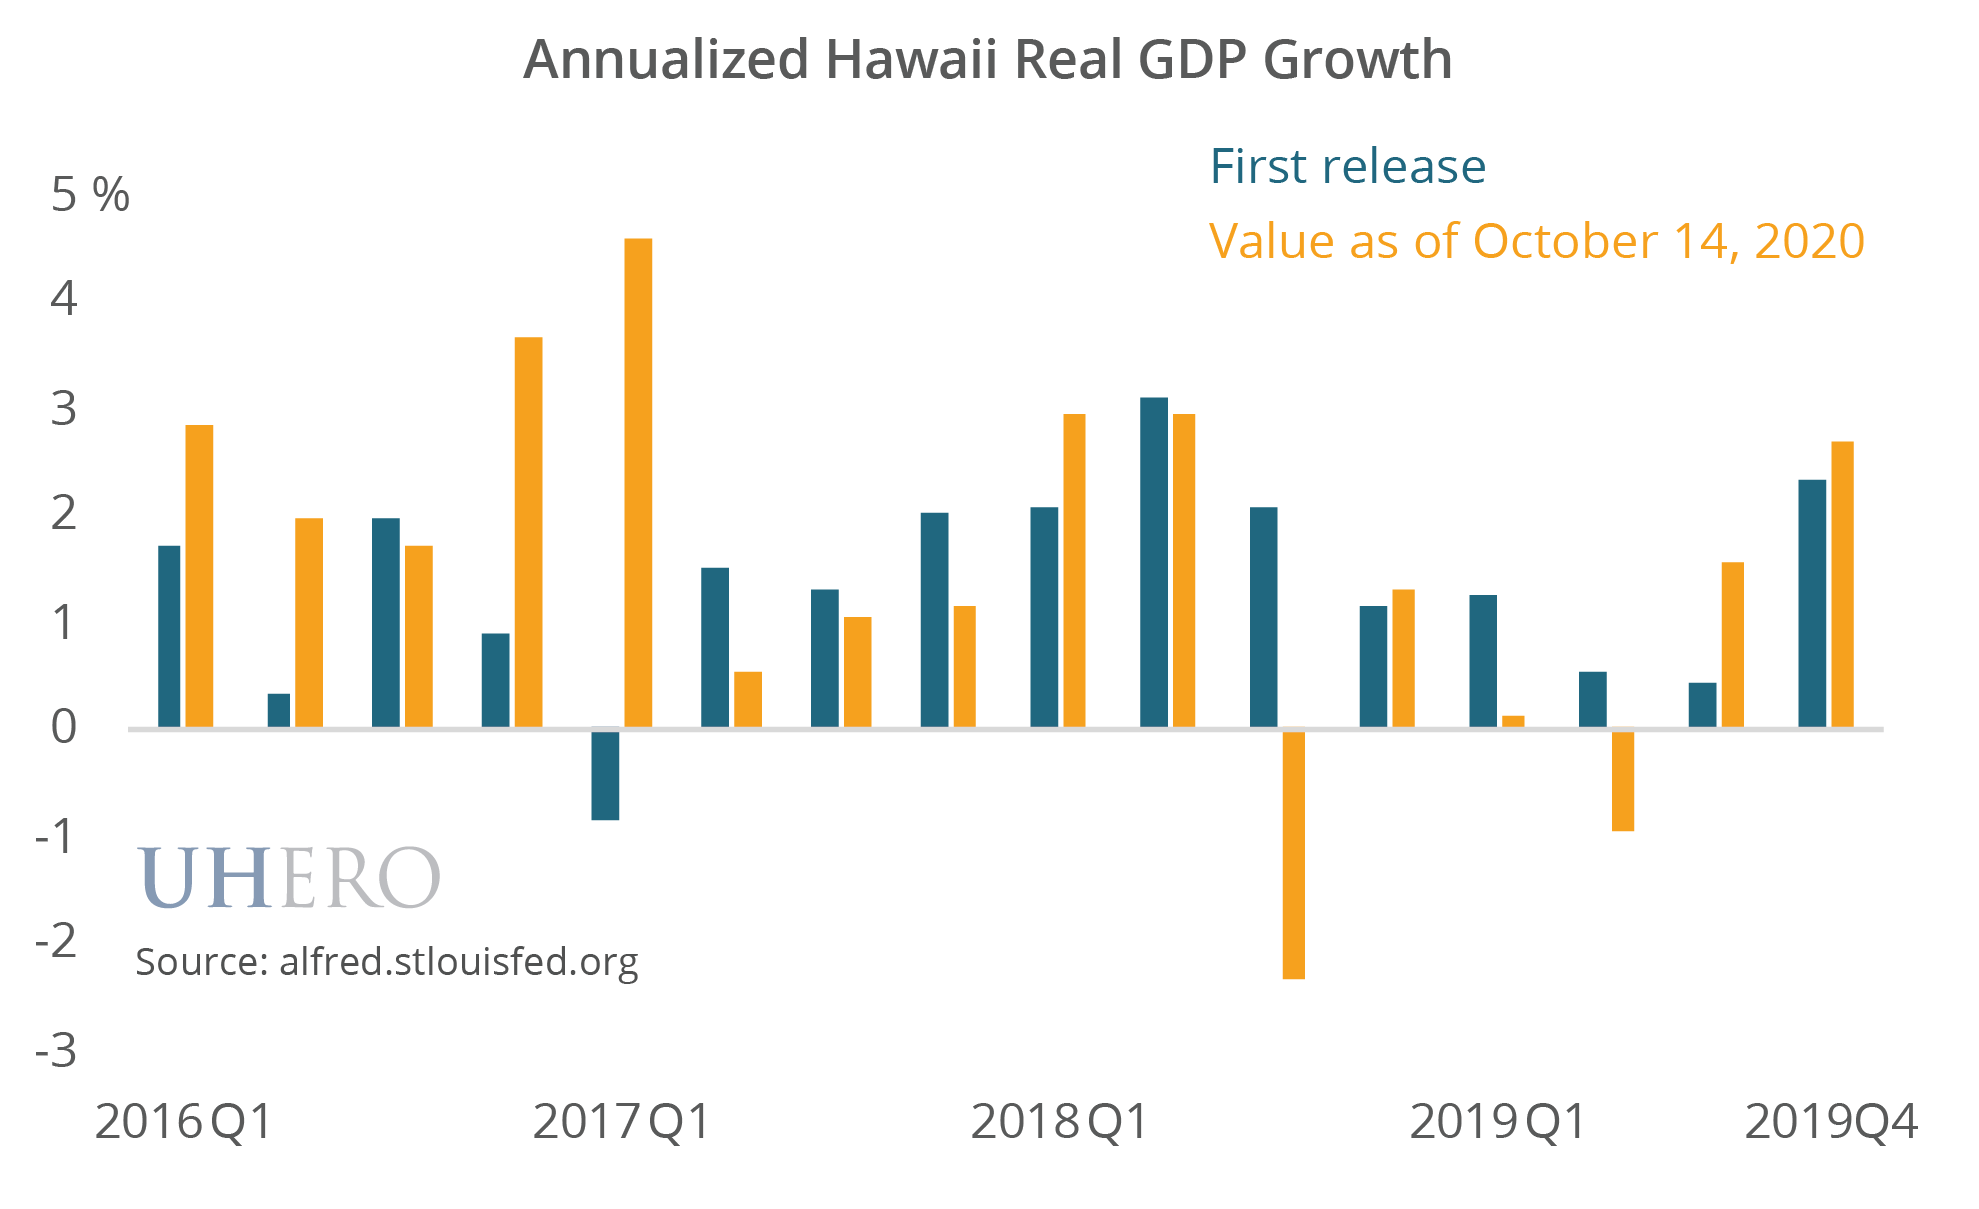 Annualized Hawaii Real GDP Growth